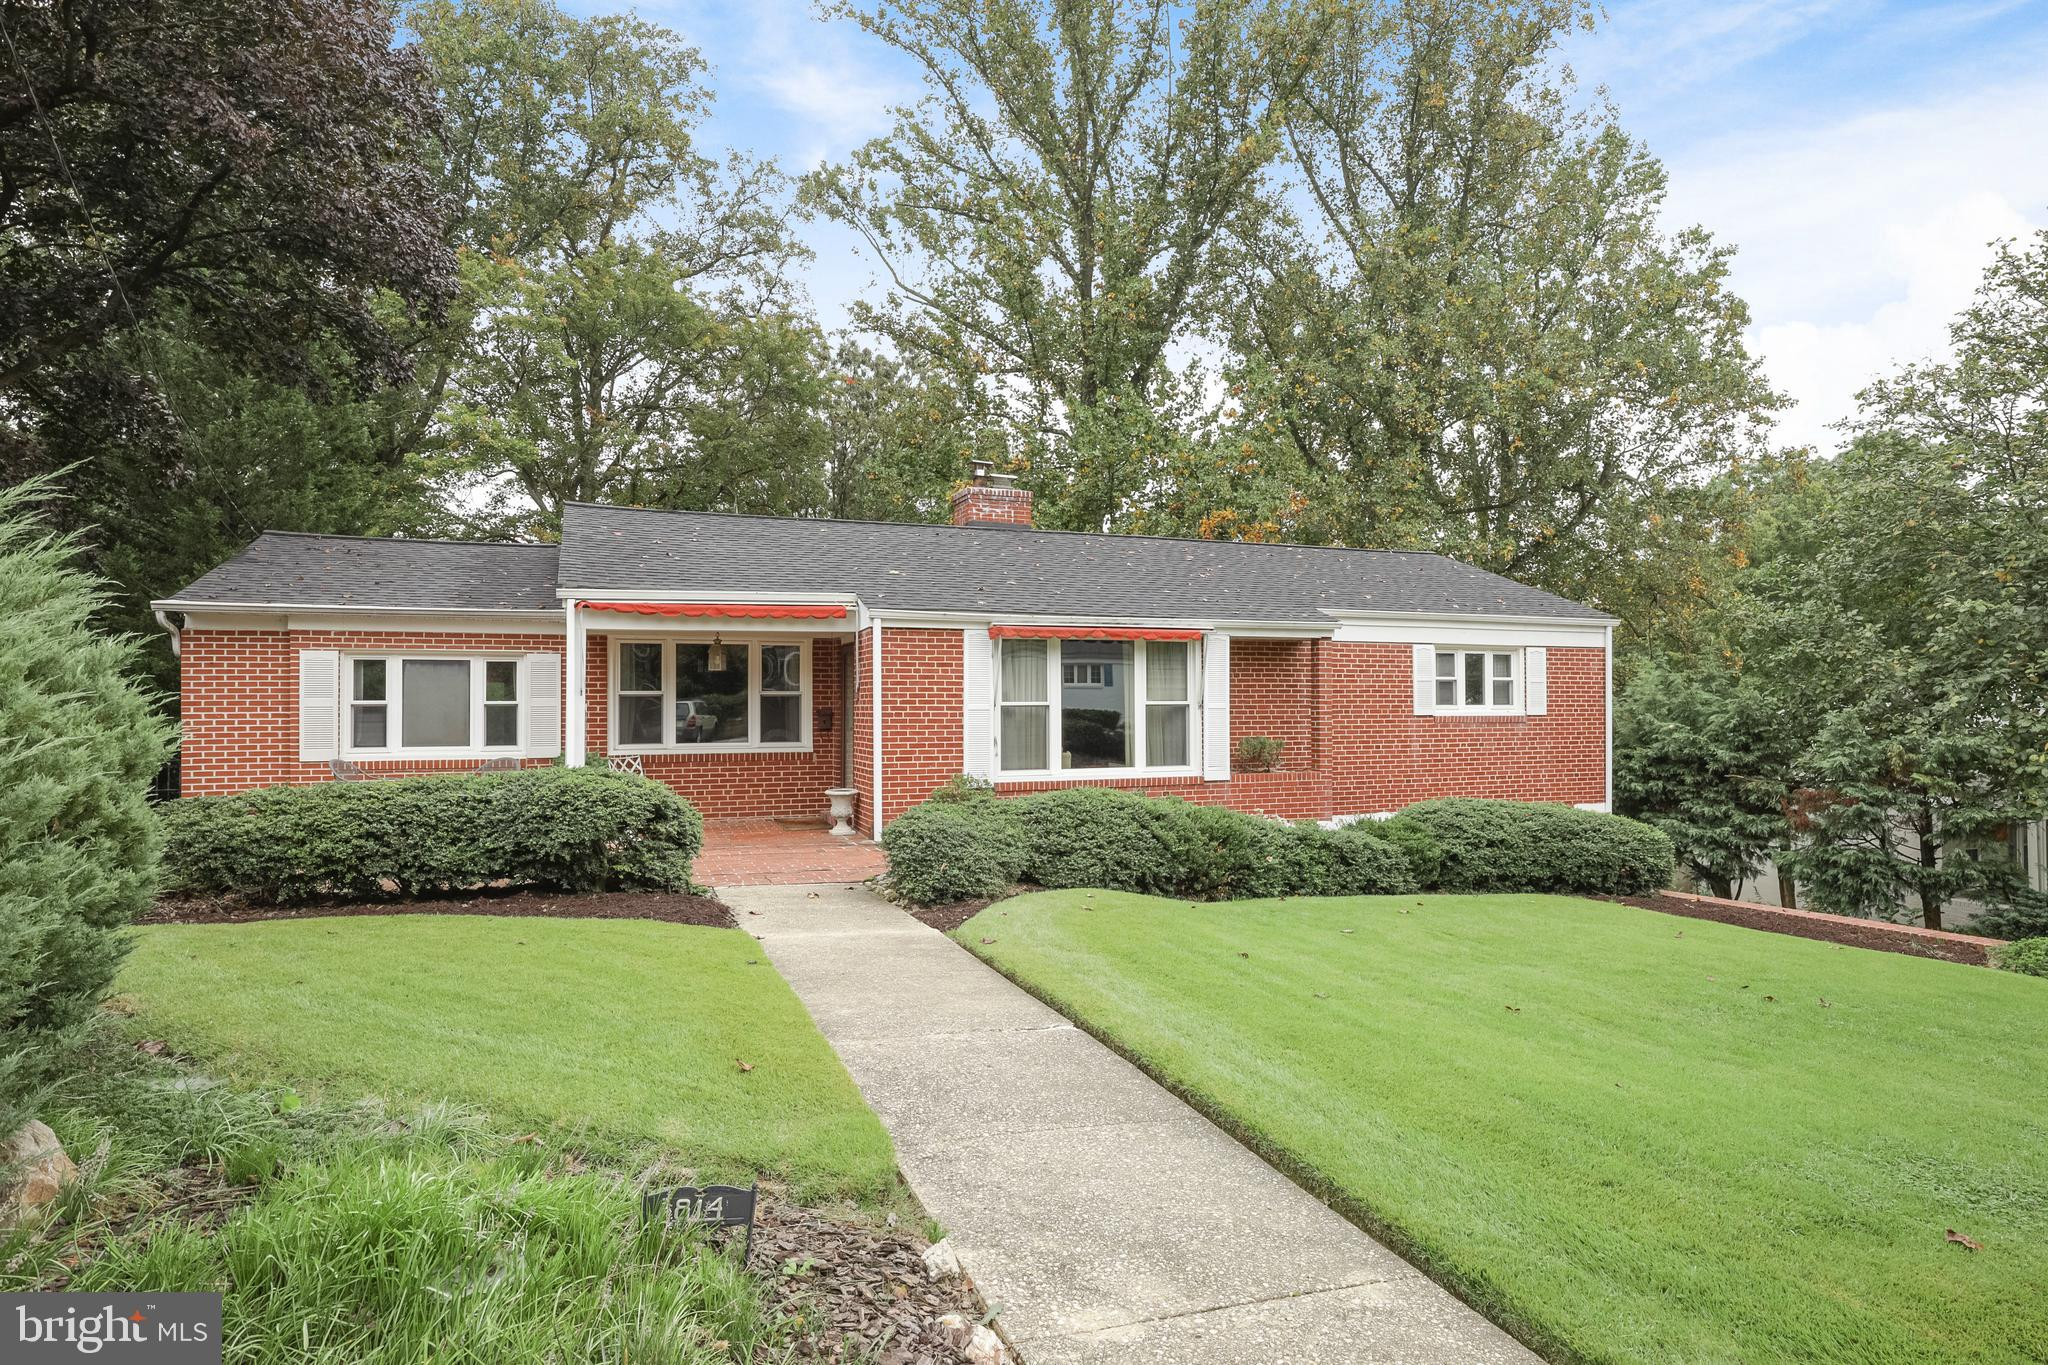 What an opportunity!! Great West Towson brick rancher with lower level one car garage. Traditional layout - beaqutiful hardwood floors throughout,  Living Room with wood-burning brick fireplace. Layout has primary bedroom suite to the left of the entry (bedroom, bath and sitting room), and two other bedrooms with  full bath to the right of the living room. A sunroom addition off the back overlooks the fabulous private rear yard.  Lower level has large clubroom, craft area, laundry area and access to the lower level garage. Also  rear walkout door from the garage, and a full rear window letting in that natural sunlight. Rear patio & yard a must see. Home needs updating (hardwood floors in great shape though), but wonderful potential. The roof, HVAC system, and hot water heater are all newer! Good bones!